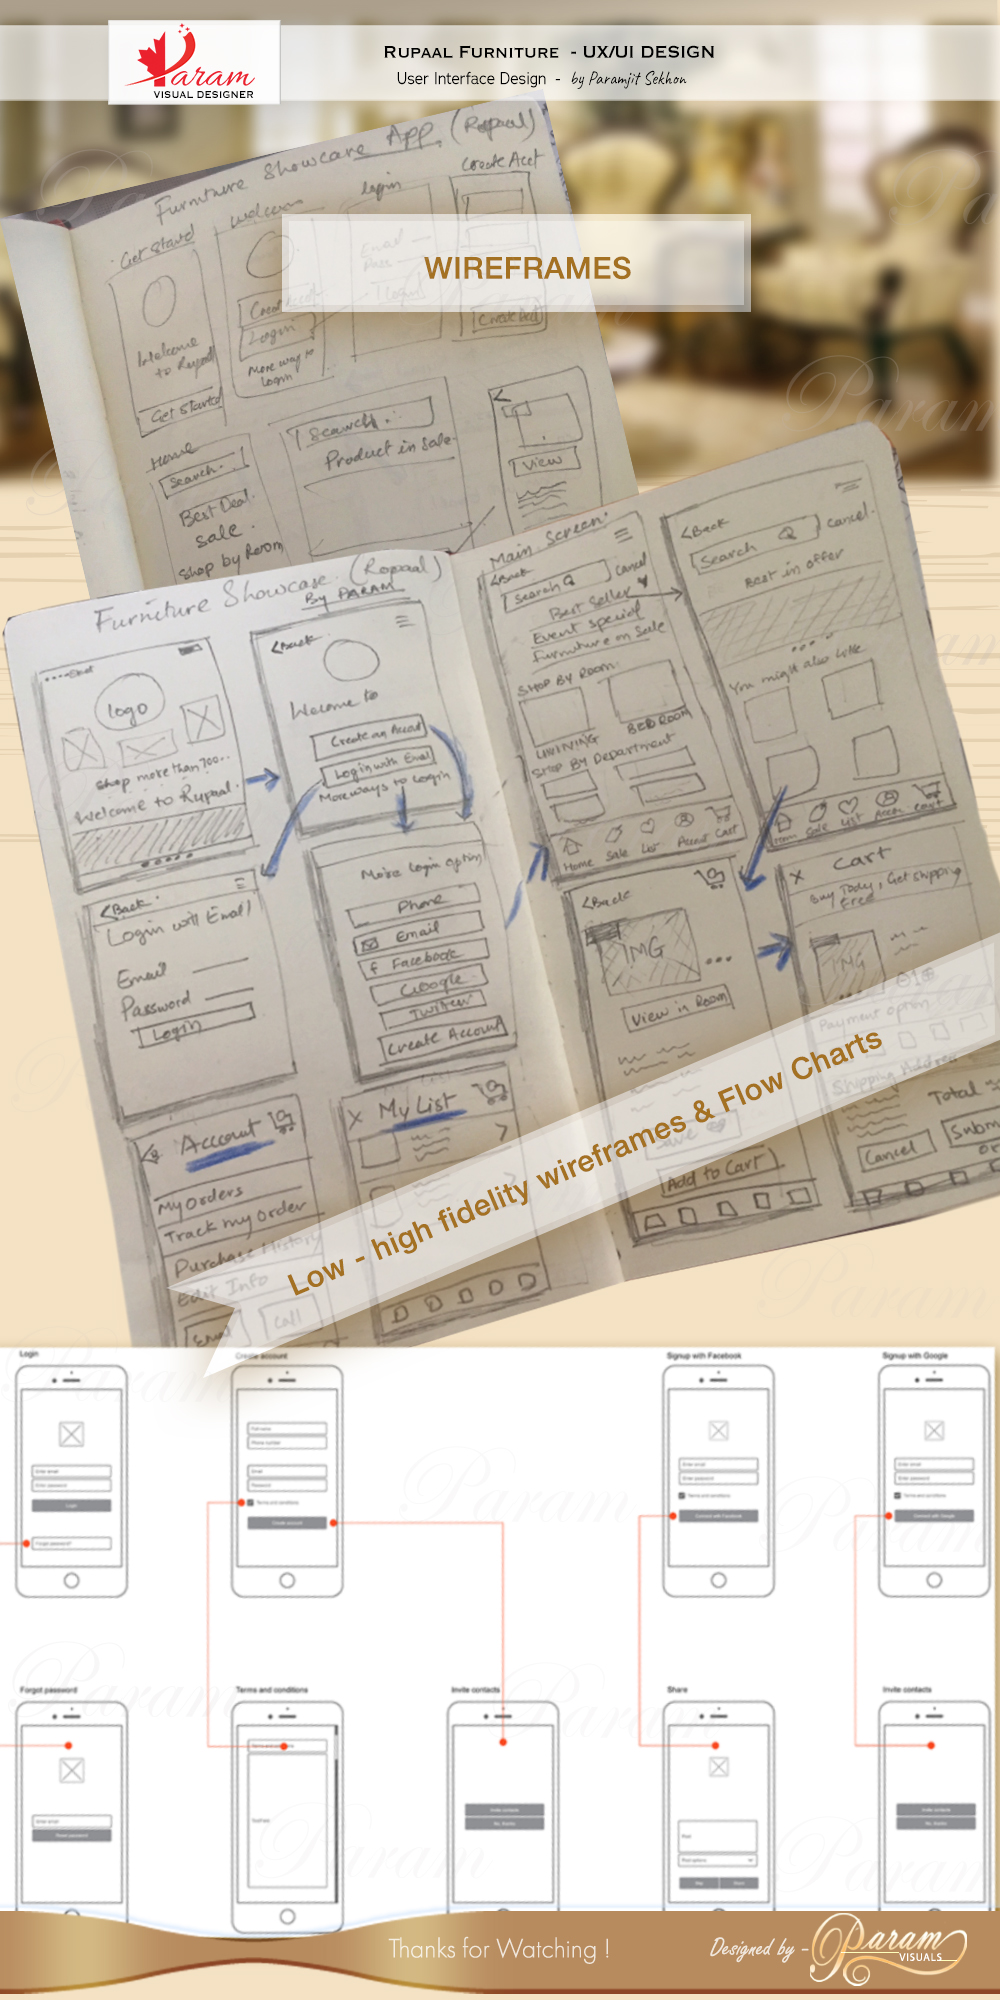 Rupaal wireframe